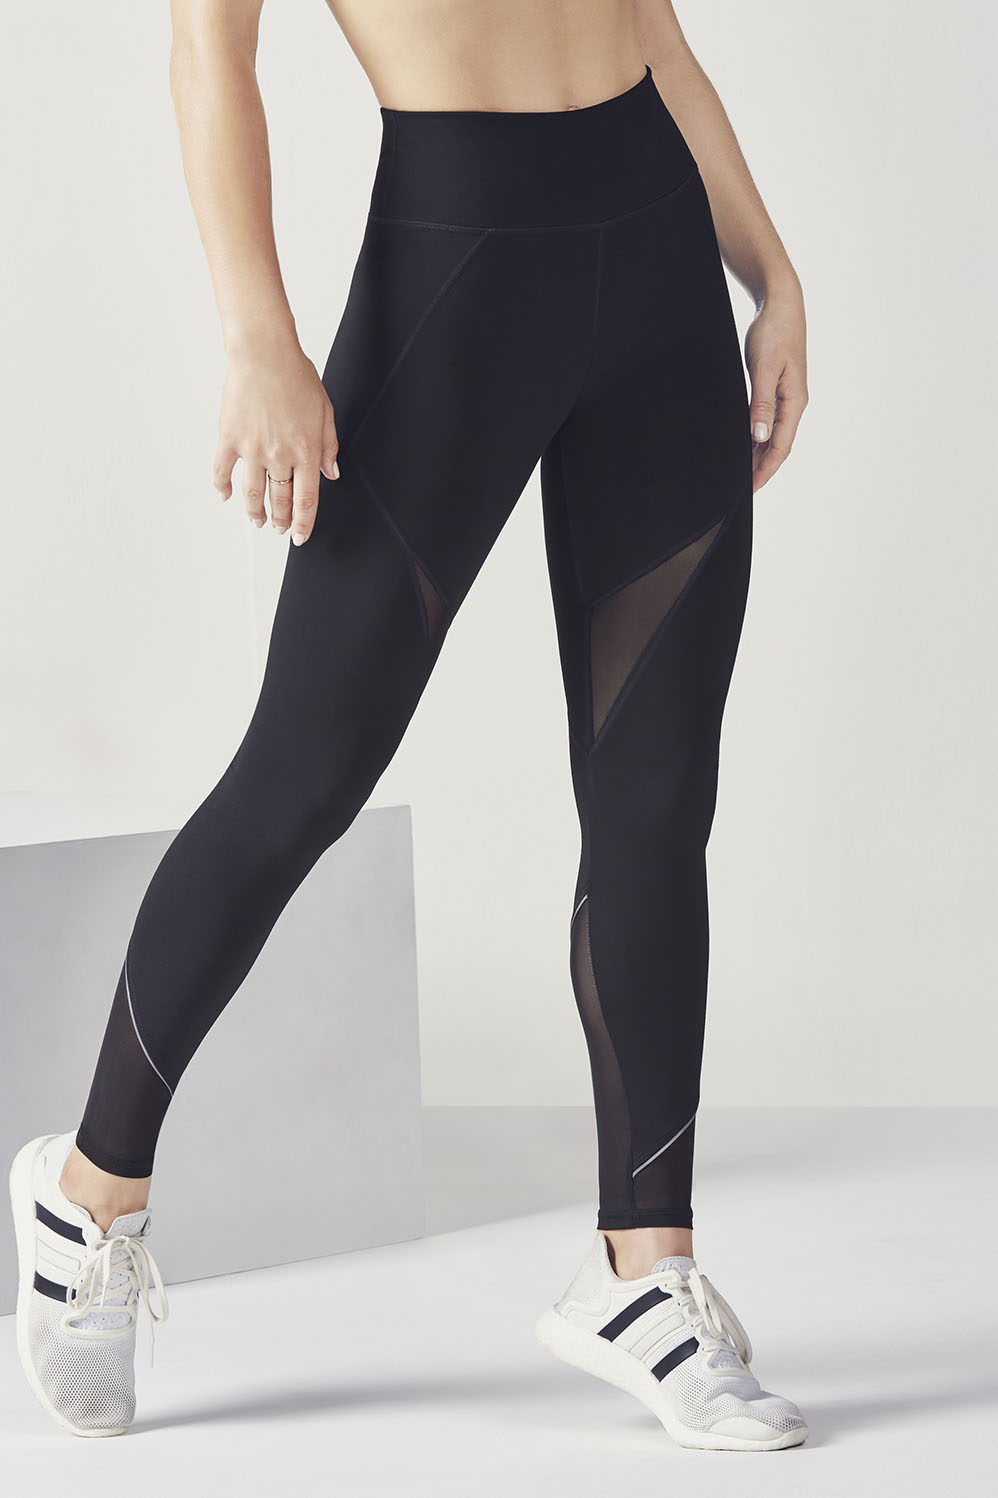 69ab9532385c08 High-Waisted Mesh PowerHold® Leggings - Black/Silver